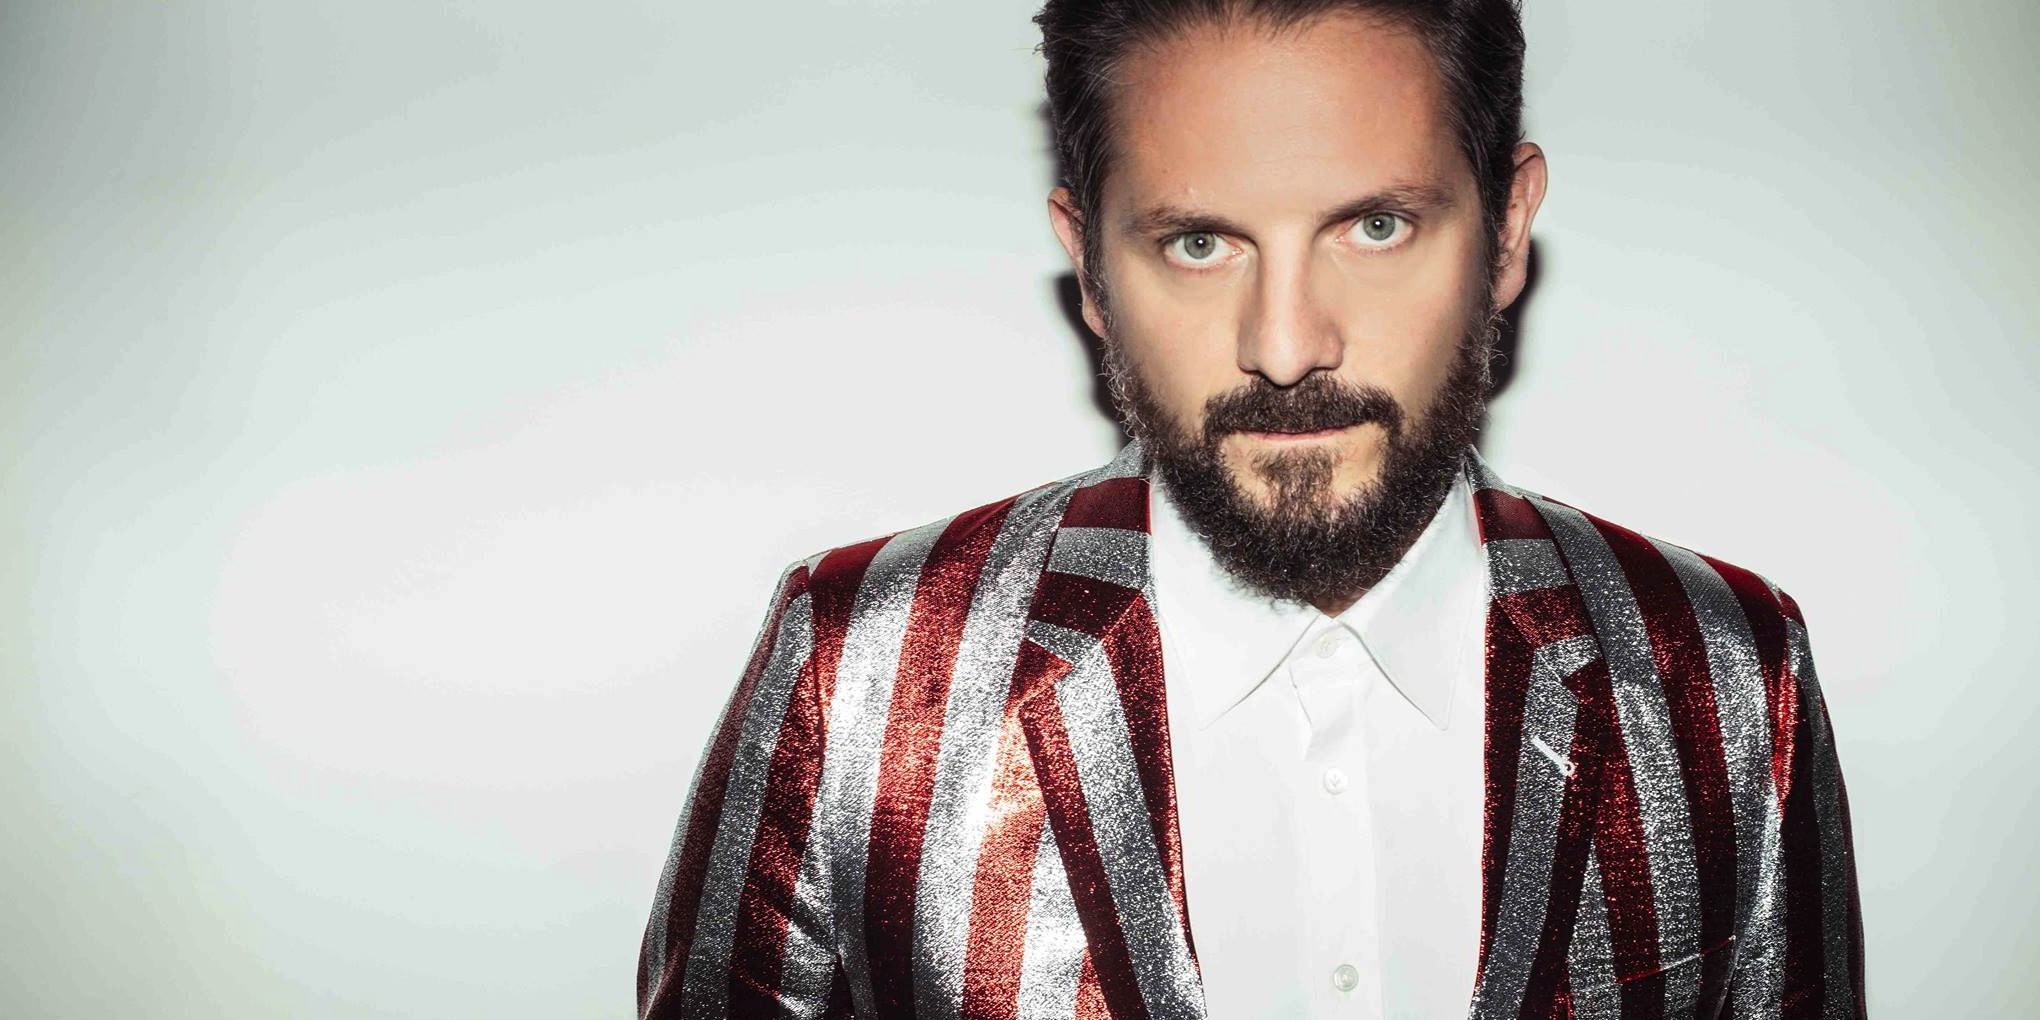 The Magician's greatest secret? Never divide music by genres